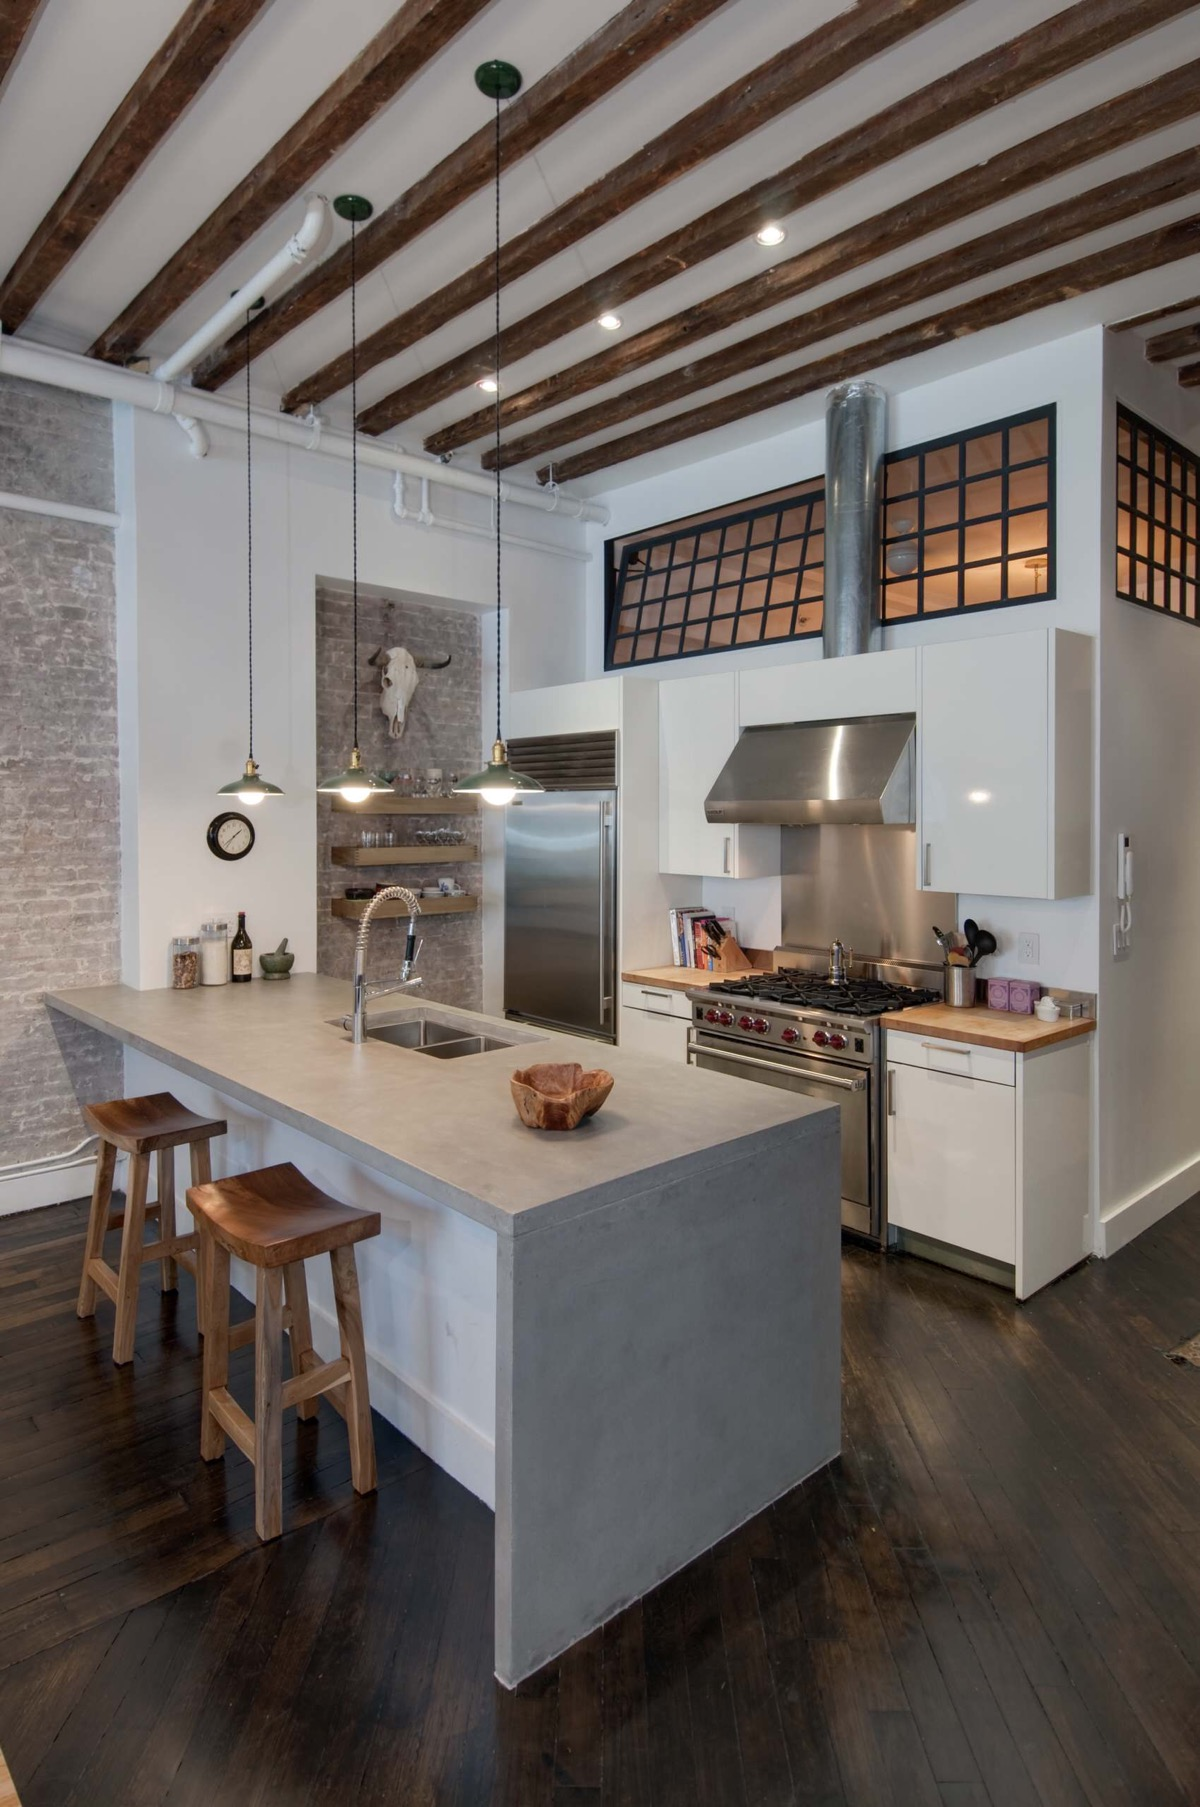 50 Gorgeous Galley Kitchens And Tips You Can Use From Them images 23